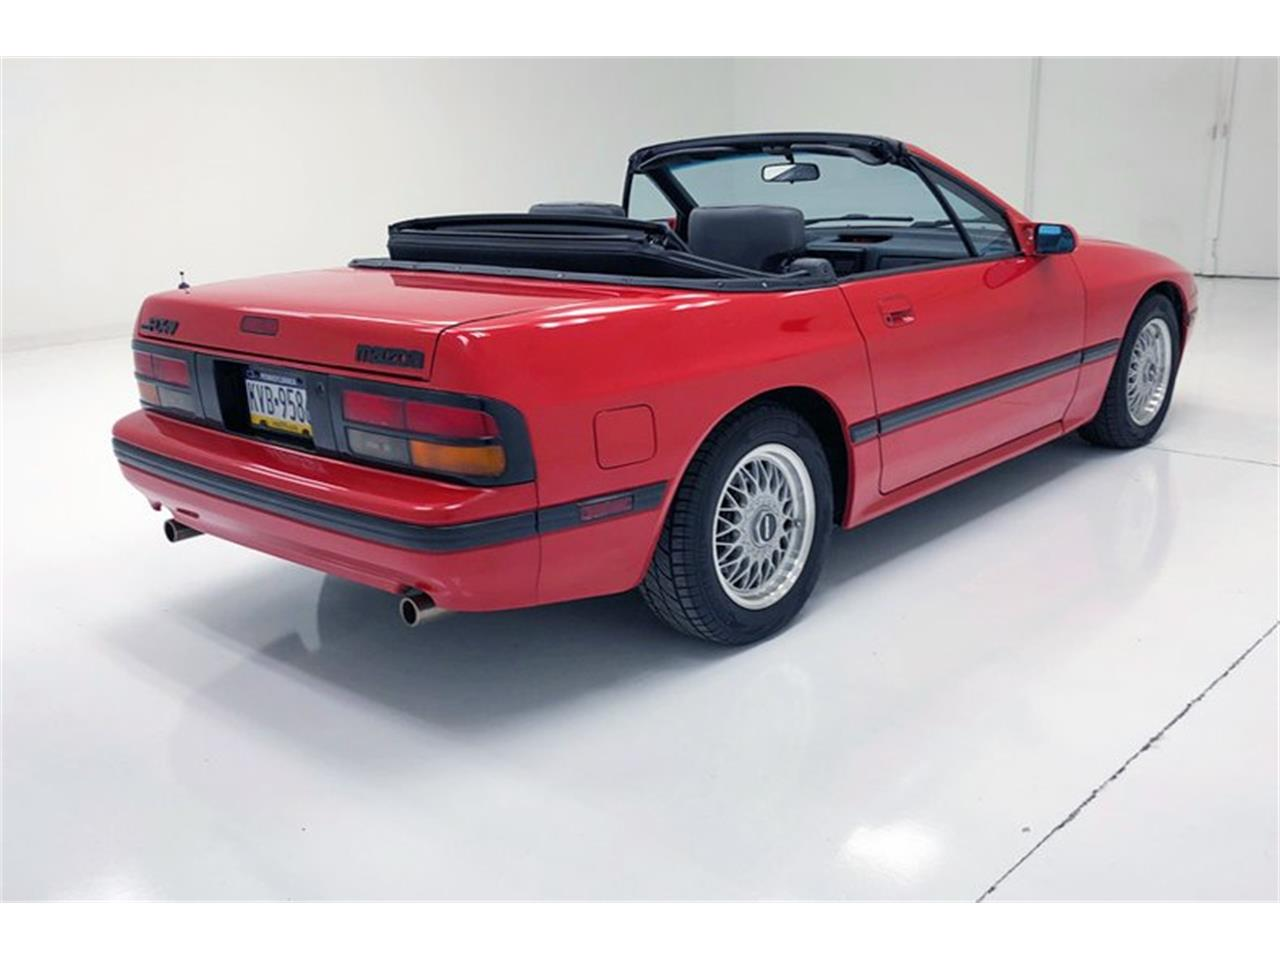 Large Picture of '88 Mazda RX-7 located in Morgantown Pennsylvania - $9,400.00 - OTRD